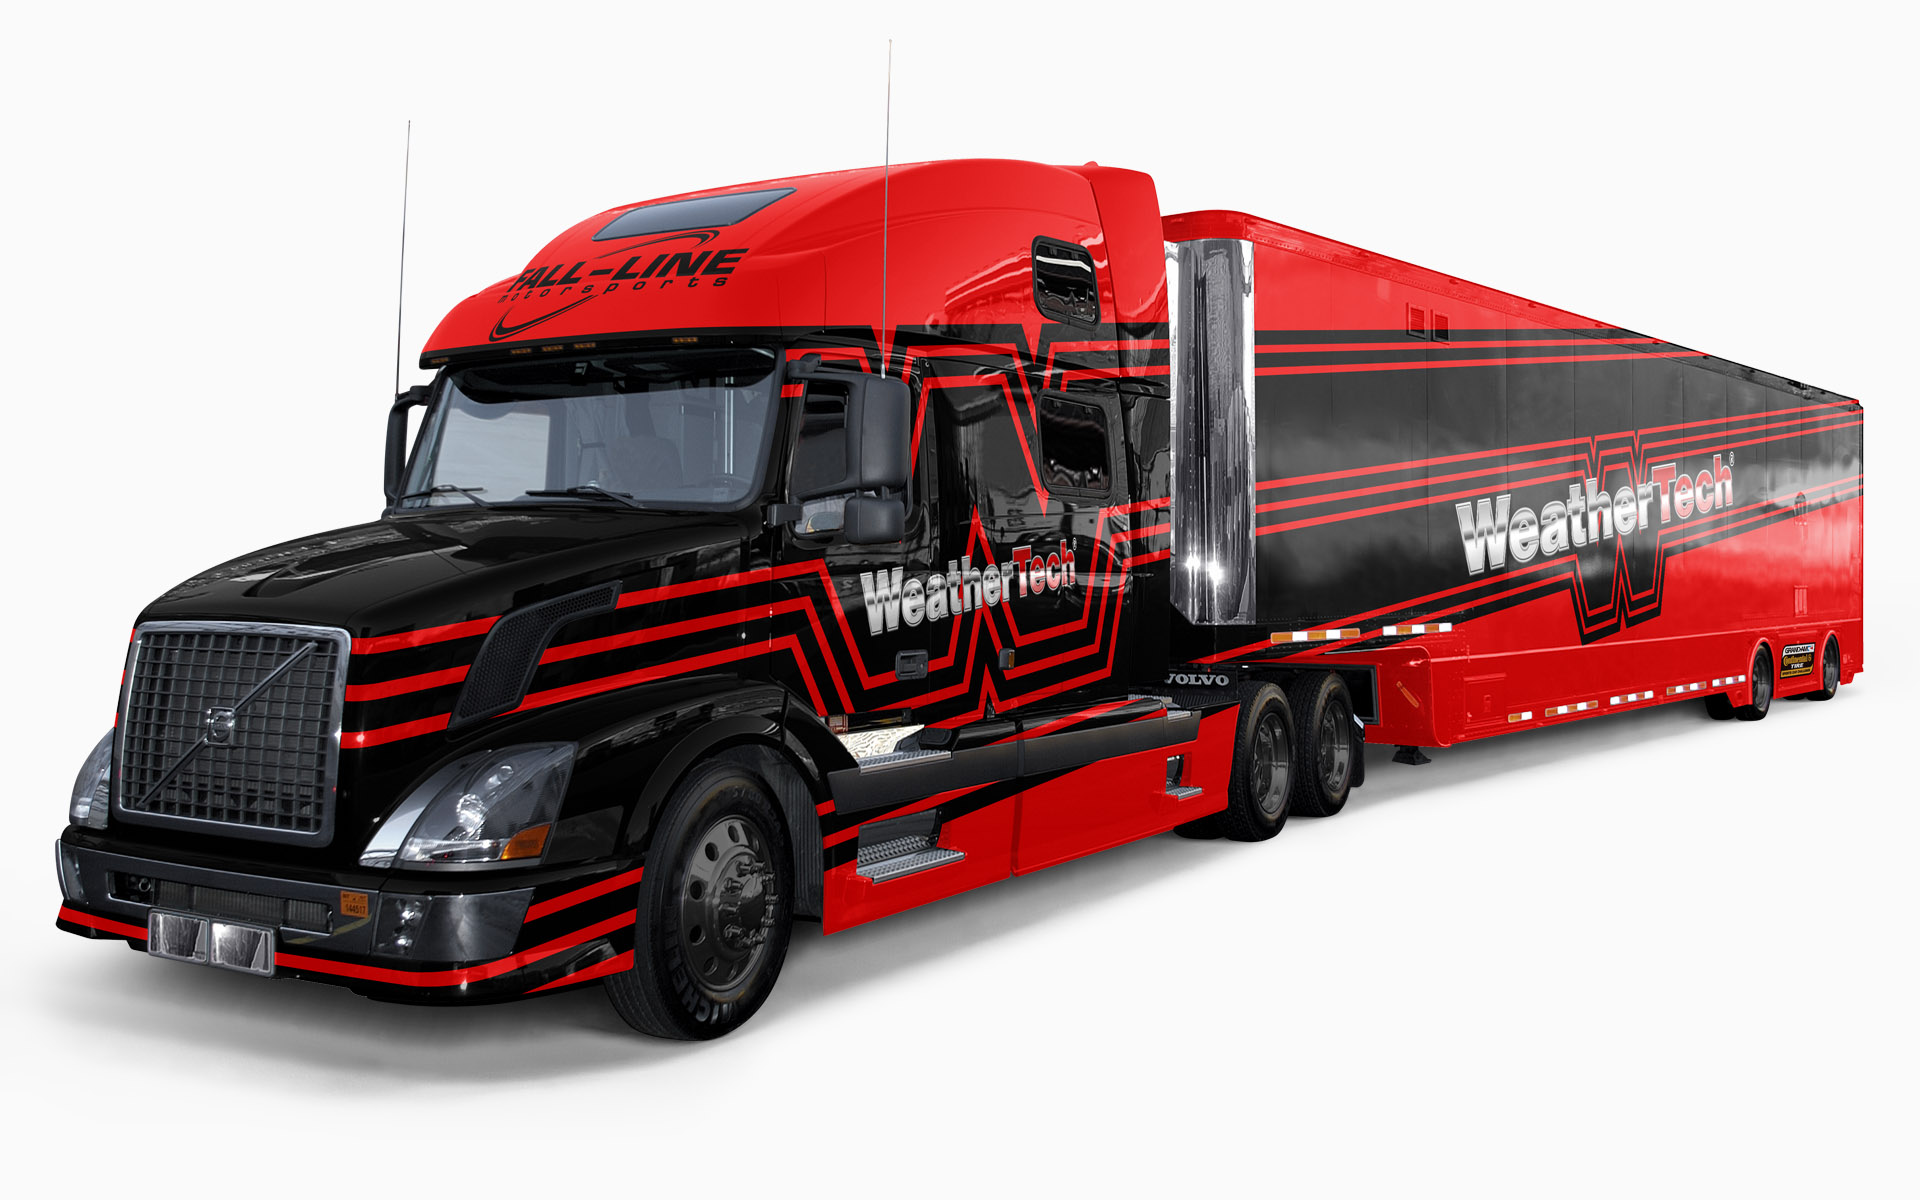 Fall-Line Motorsports WeatherTech Transporter Livery Visualization